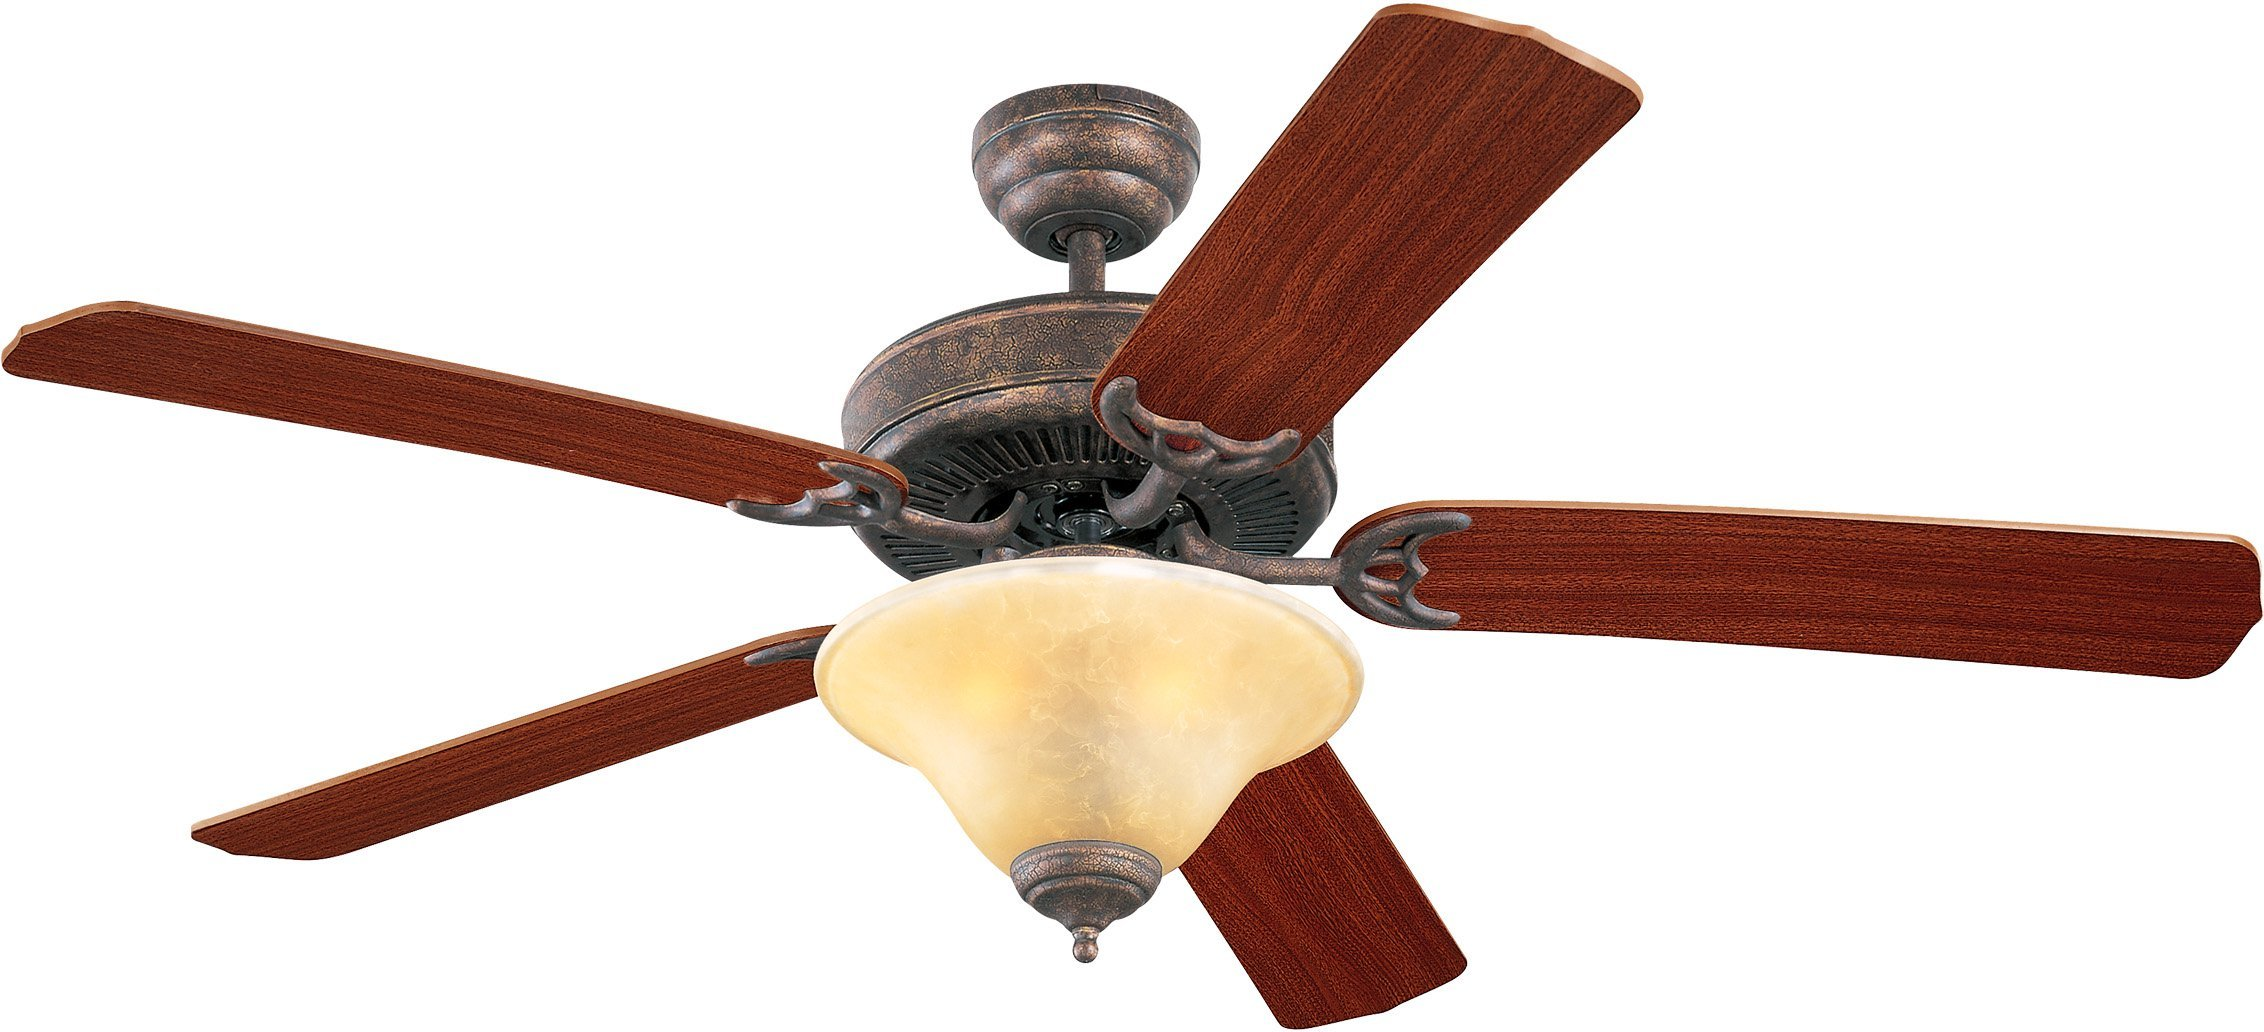 Monte Carlo 5HS52TBS-L, Homeowner's Deluxe, Ceiling Fan, 52'' Span, Tuscan Bronze